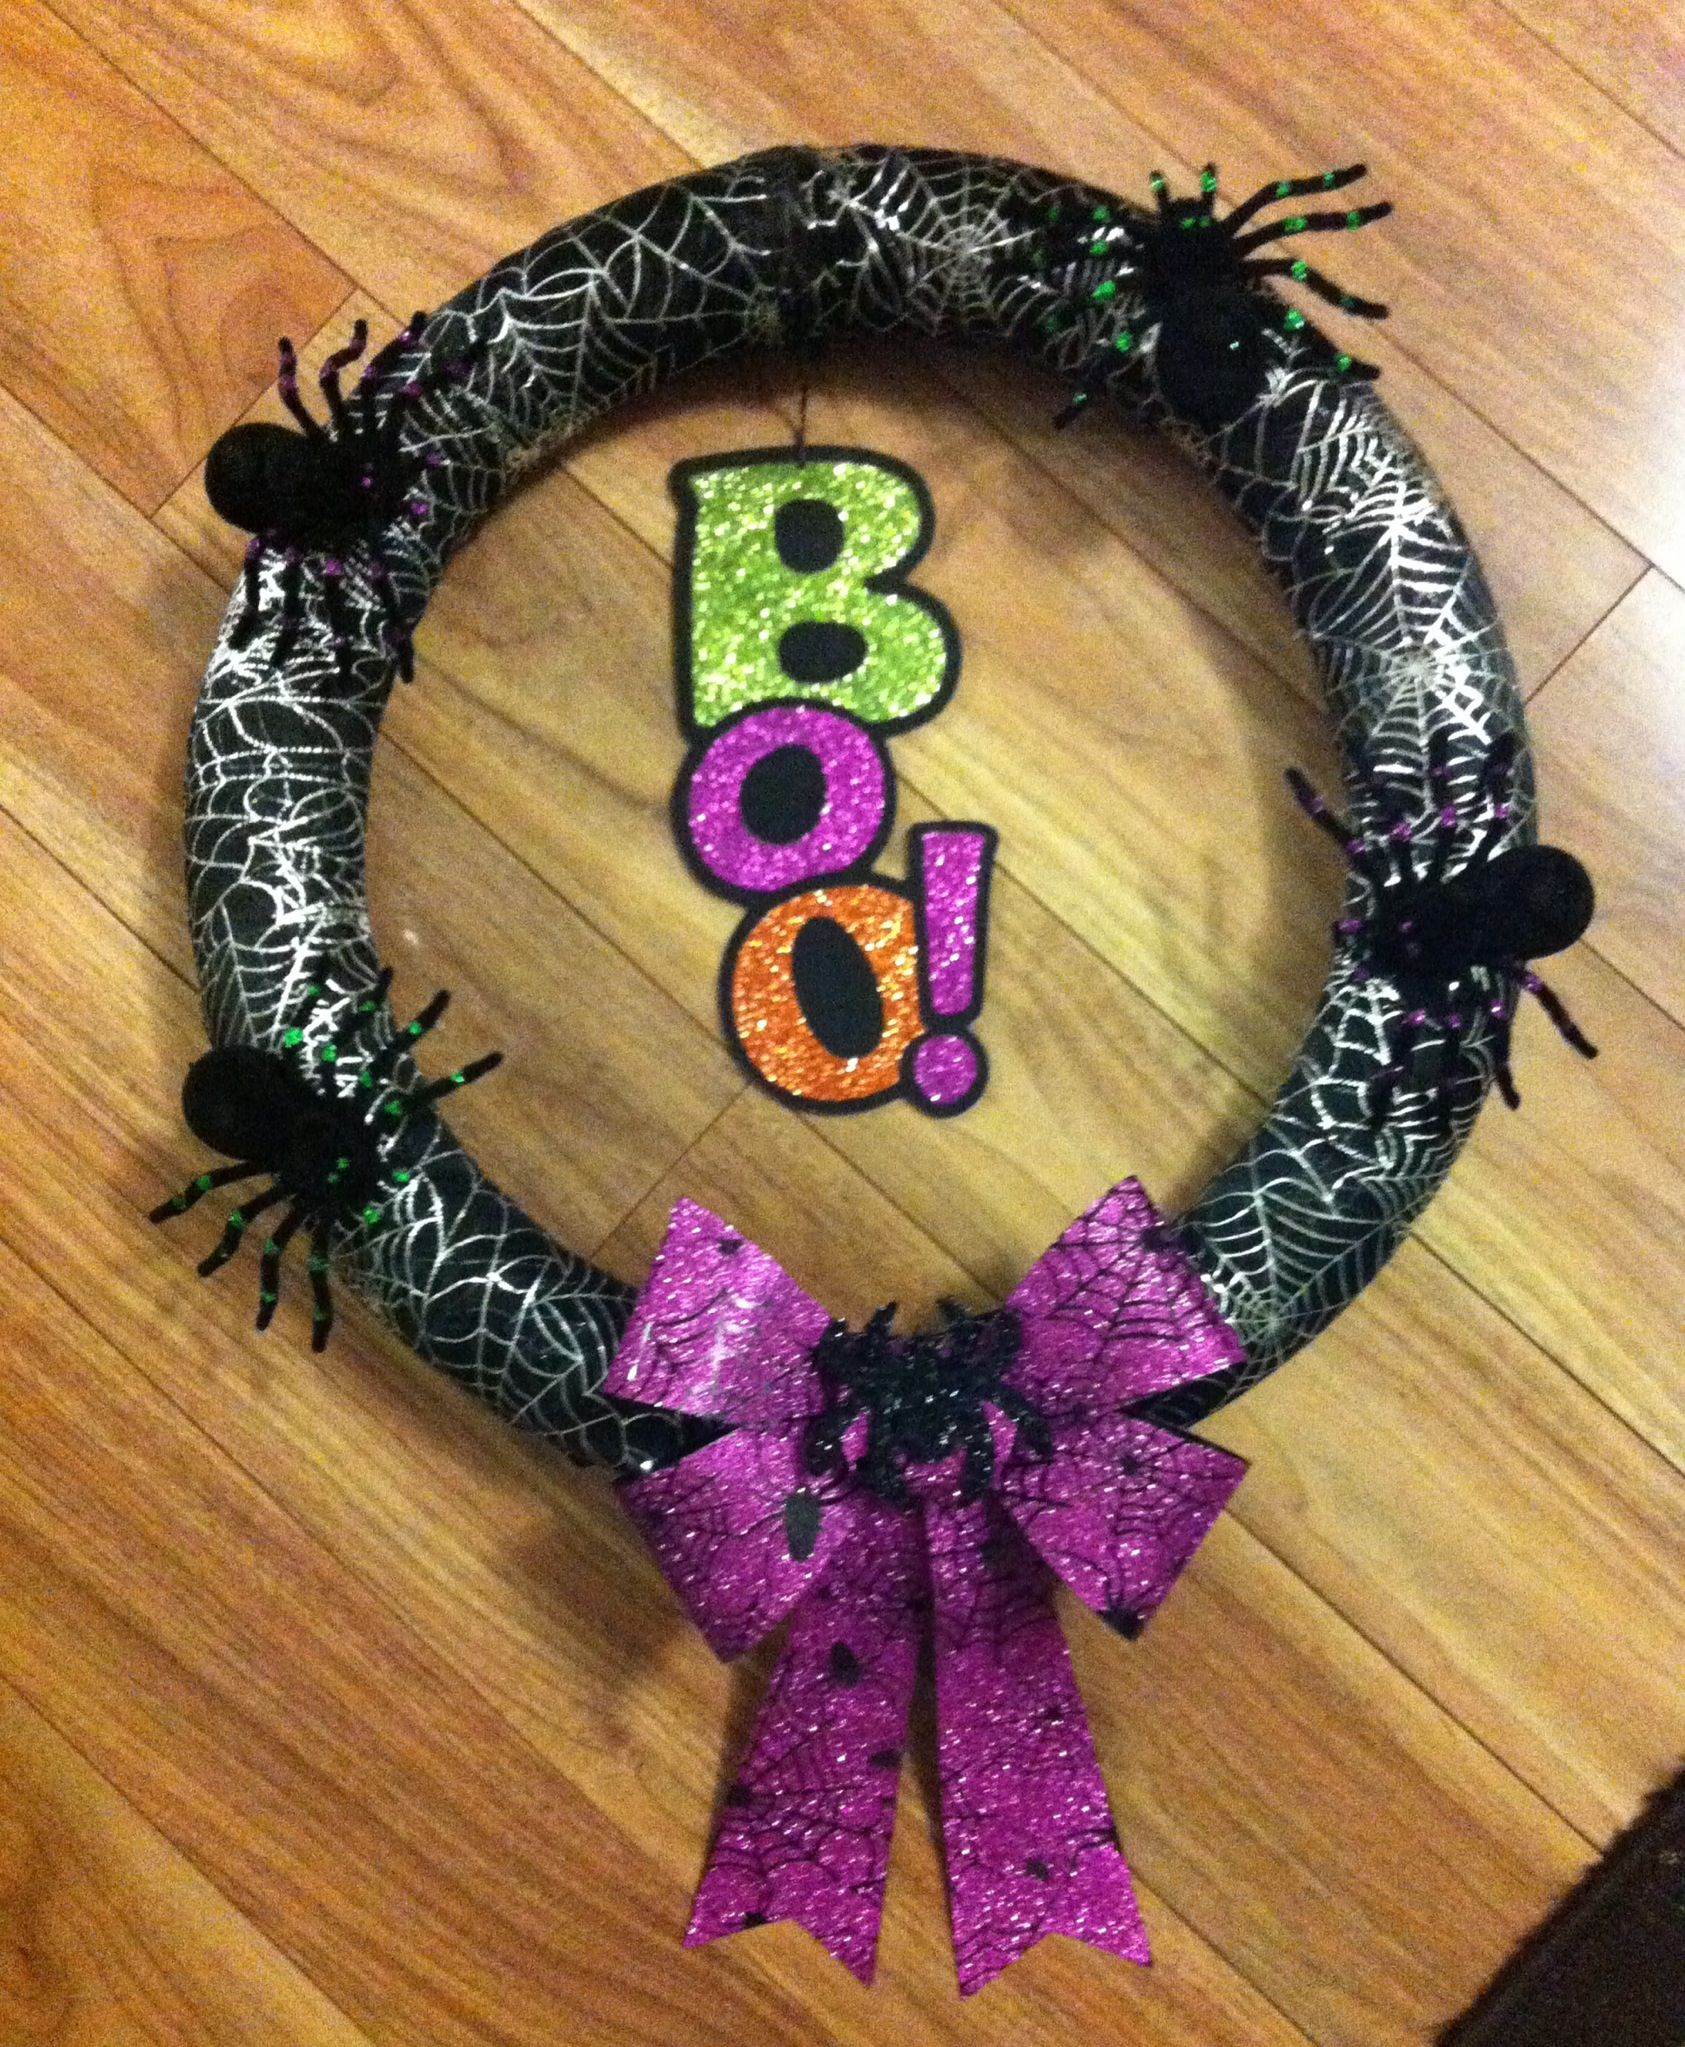 Halloween Wreath I Made Using A Pool Noodle I Had No Use For And A Few Dollar Store Accessories